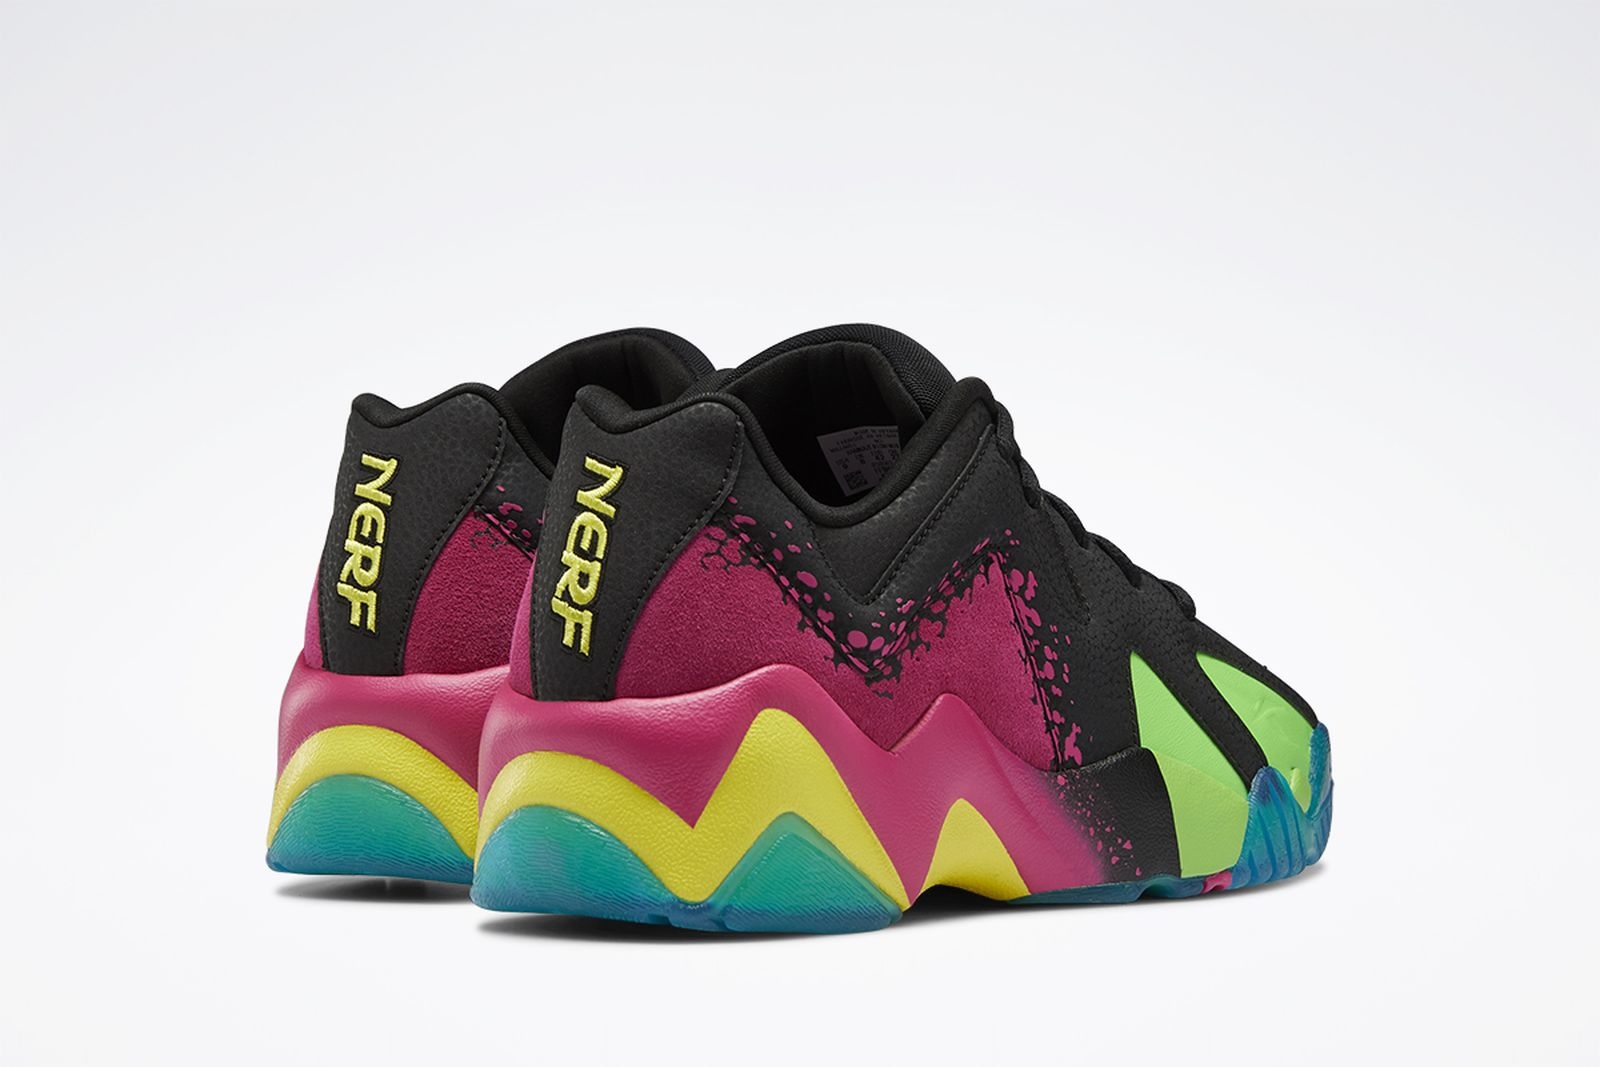 nerf-reebok-retro-basketball-collection-release-date-price-09